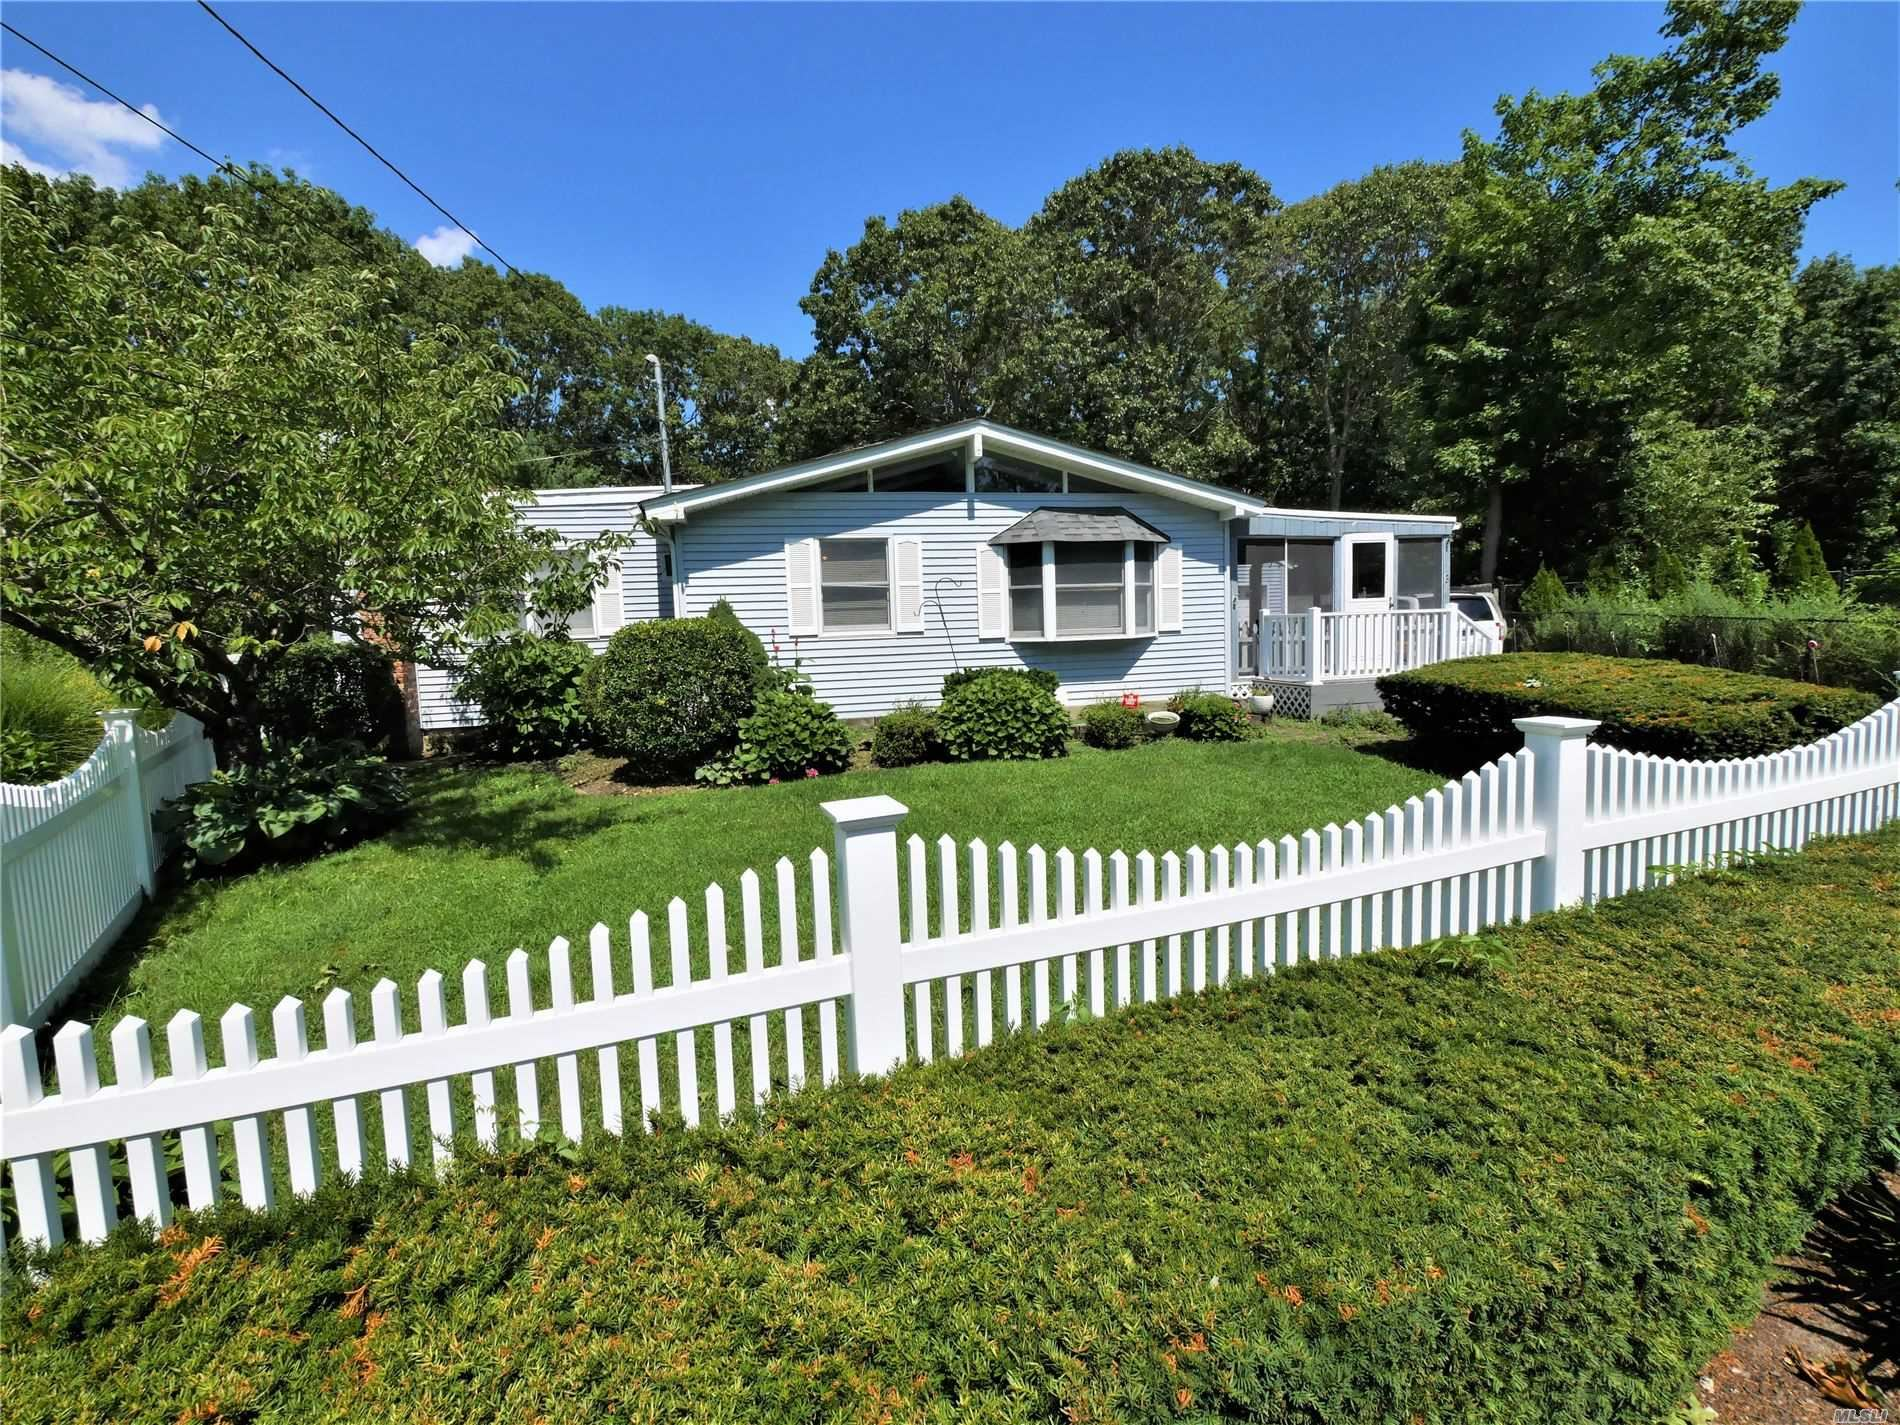 3 S Bicycle Path, Selden, NY 11784 - MLS#: 3240037